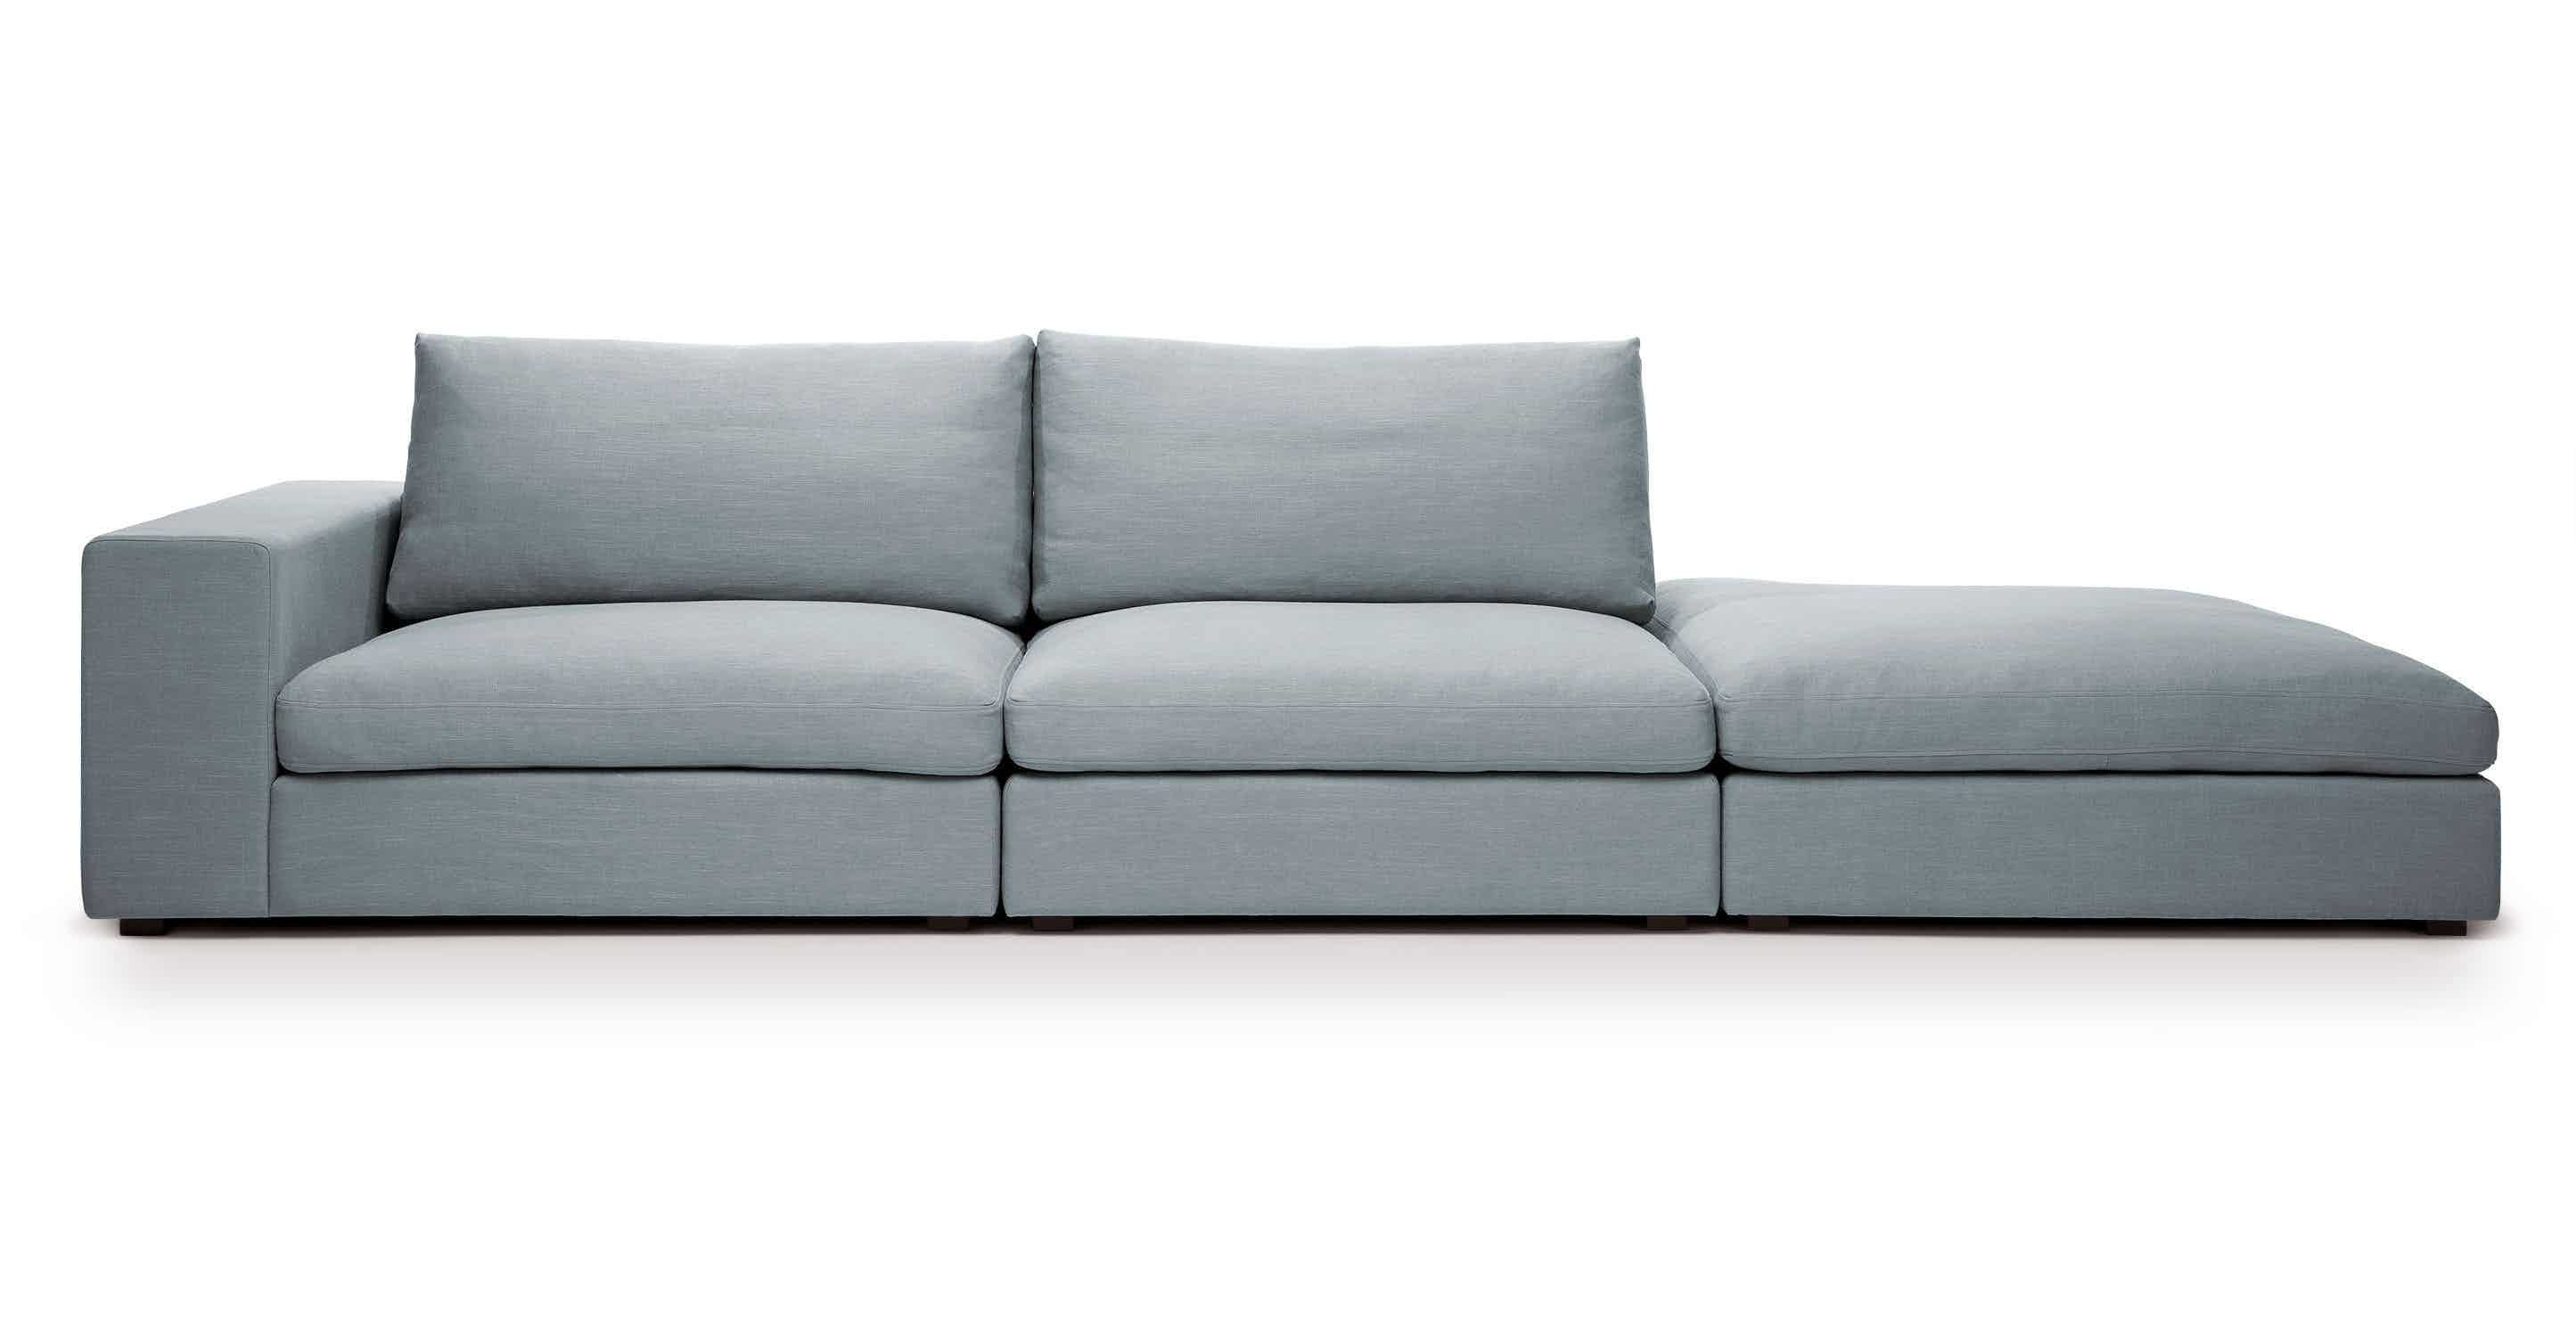 Foam Alternative To Rh S Cloud Cube Glacier Blue Modular Sofa